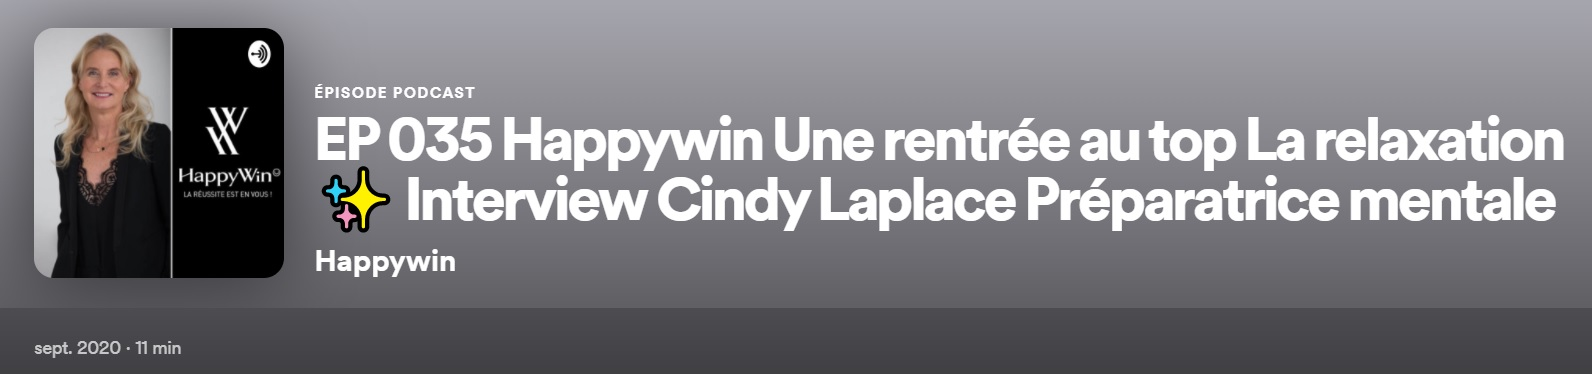 podcast relaxation cindy Laplace